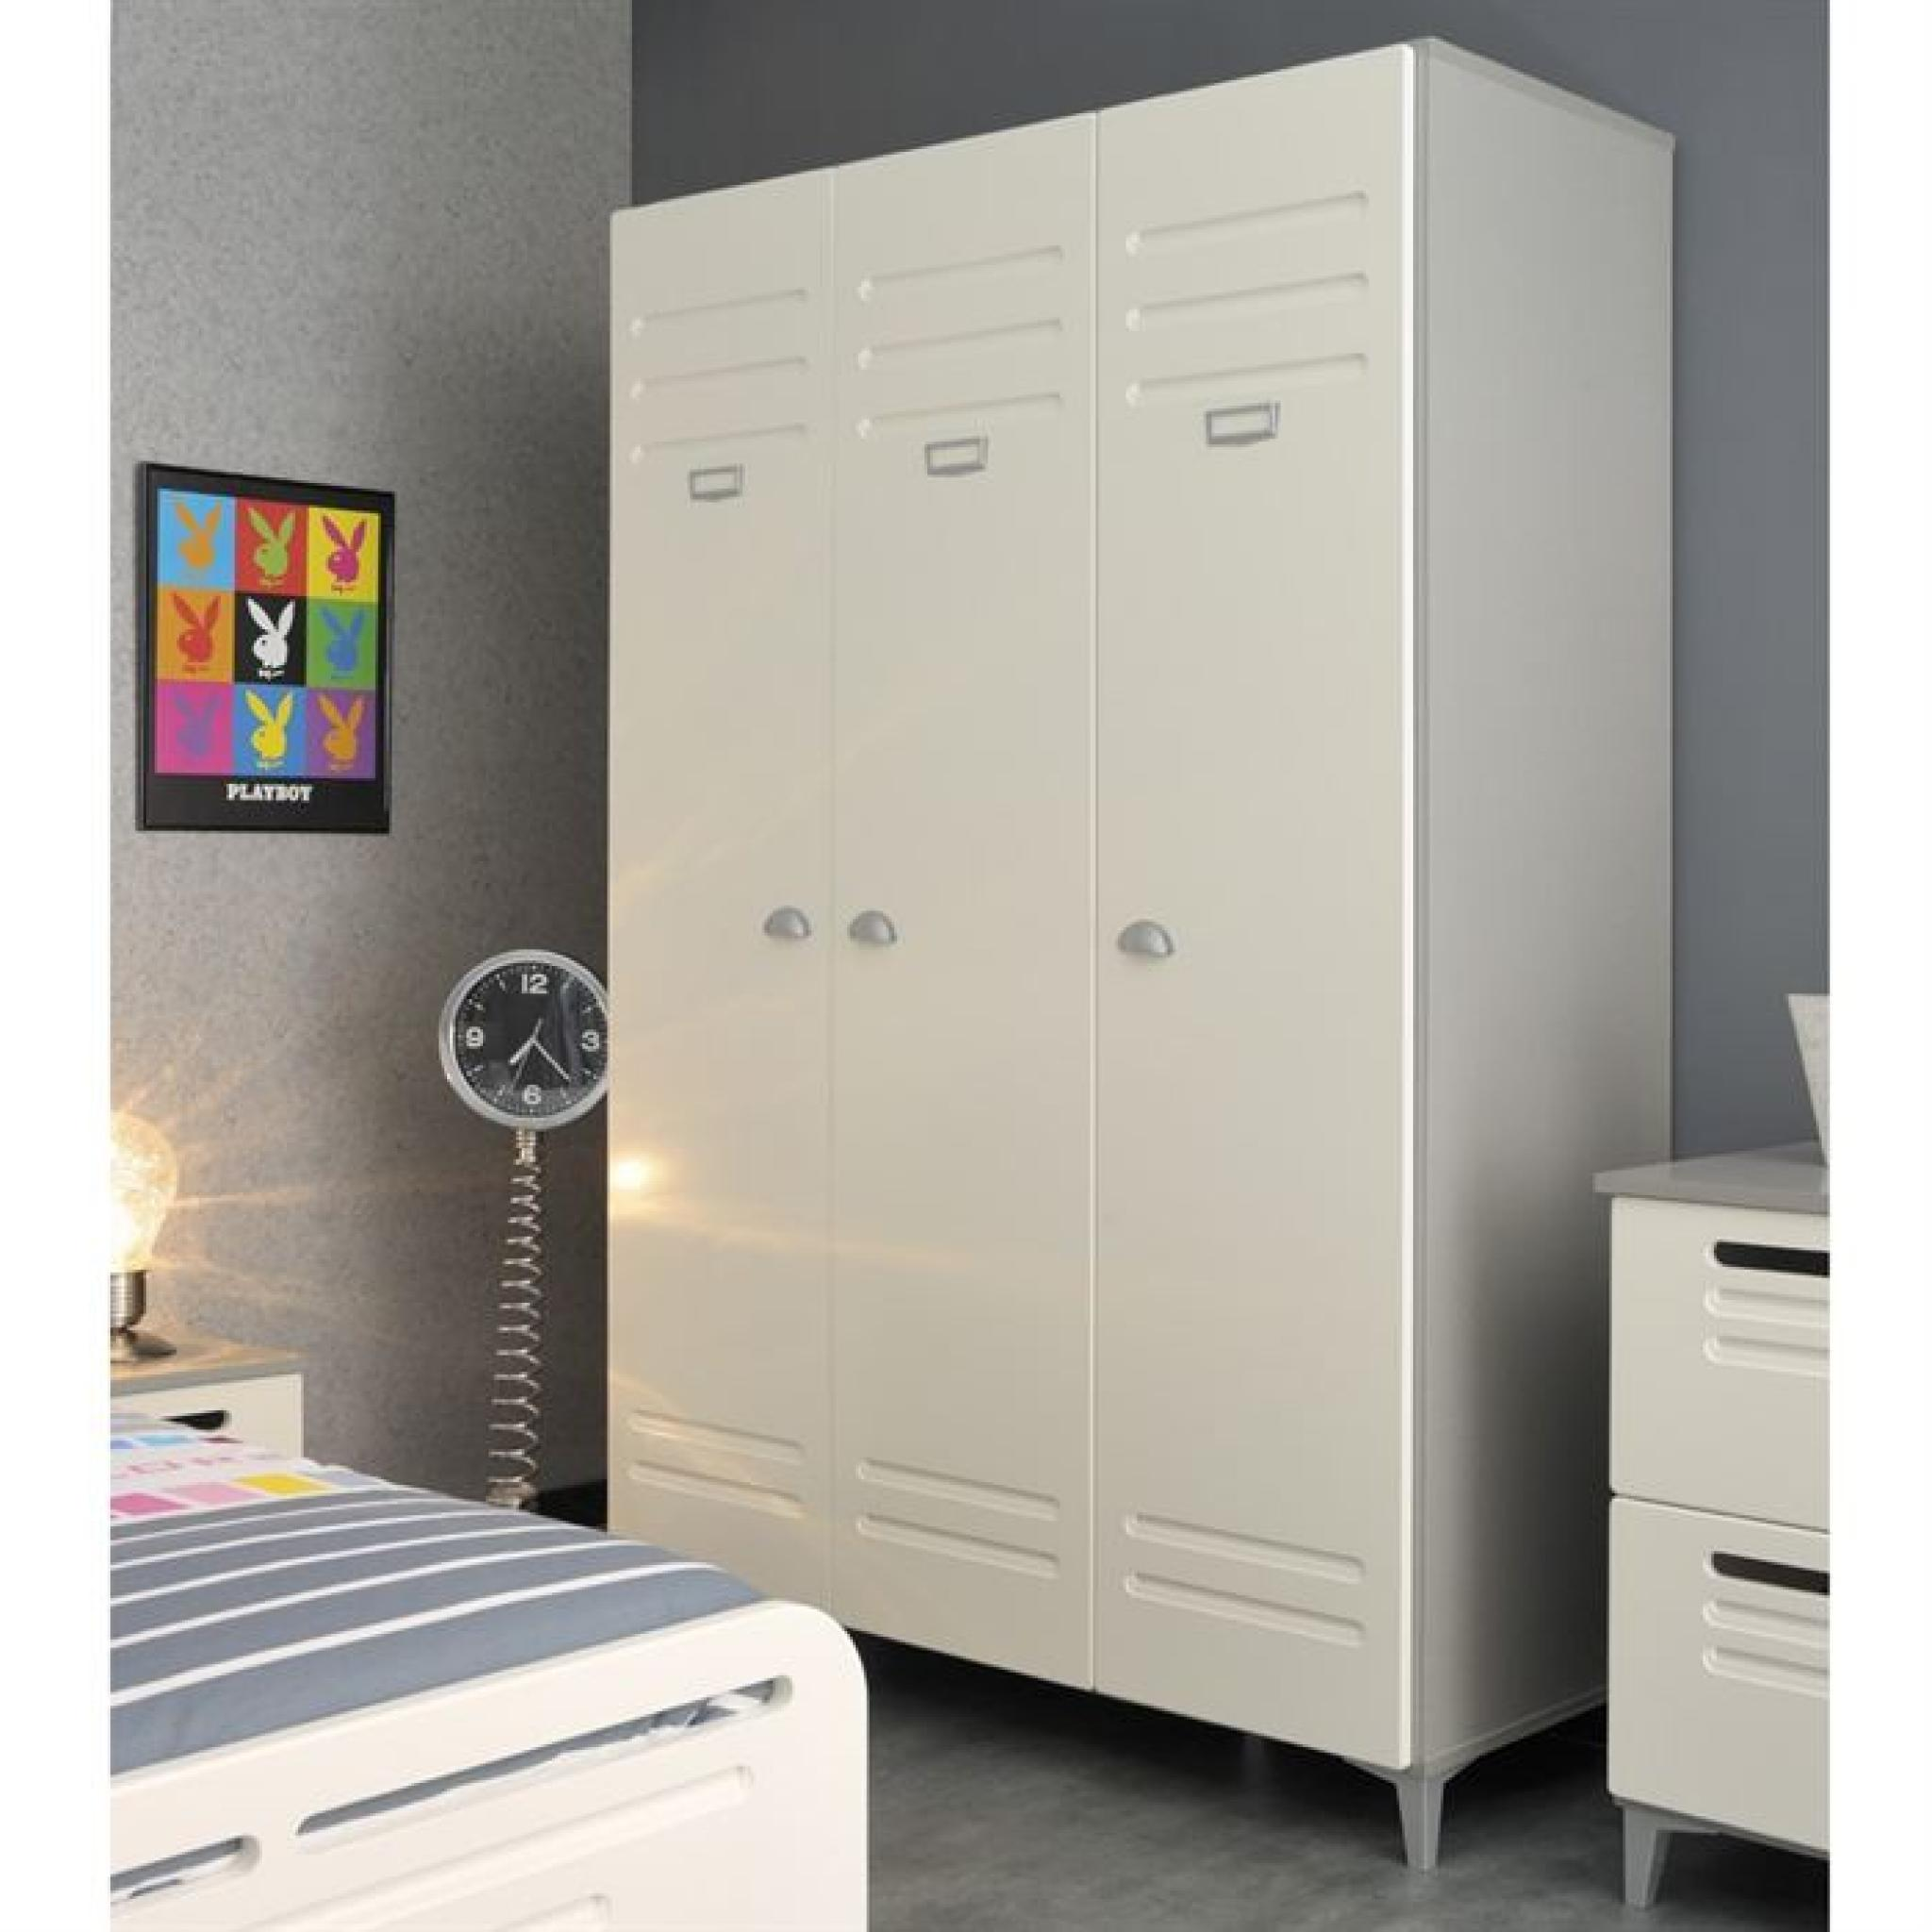 metal lit 3 tiroirs 1 chevet et 1 armoire enfant achat. Black Bedroom Furniture Sets. Home Design Ideas